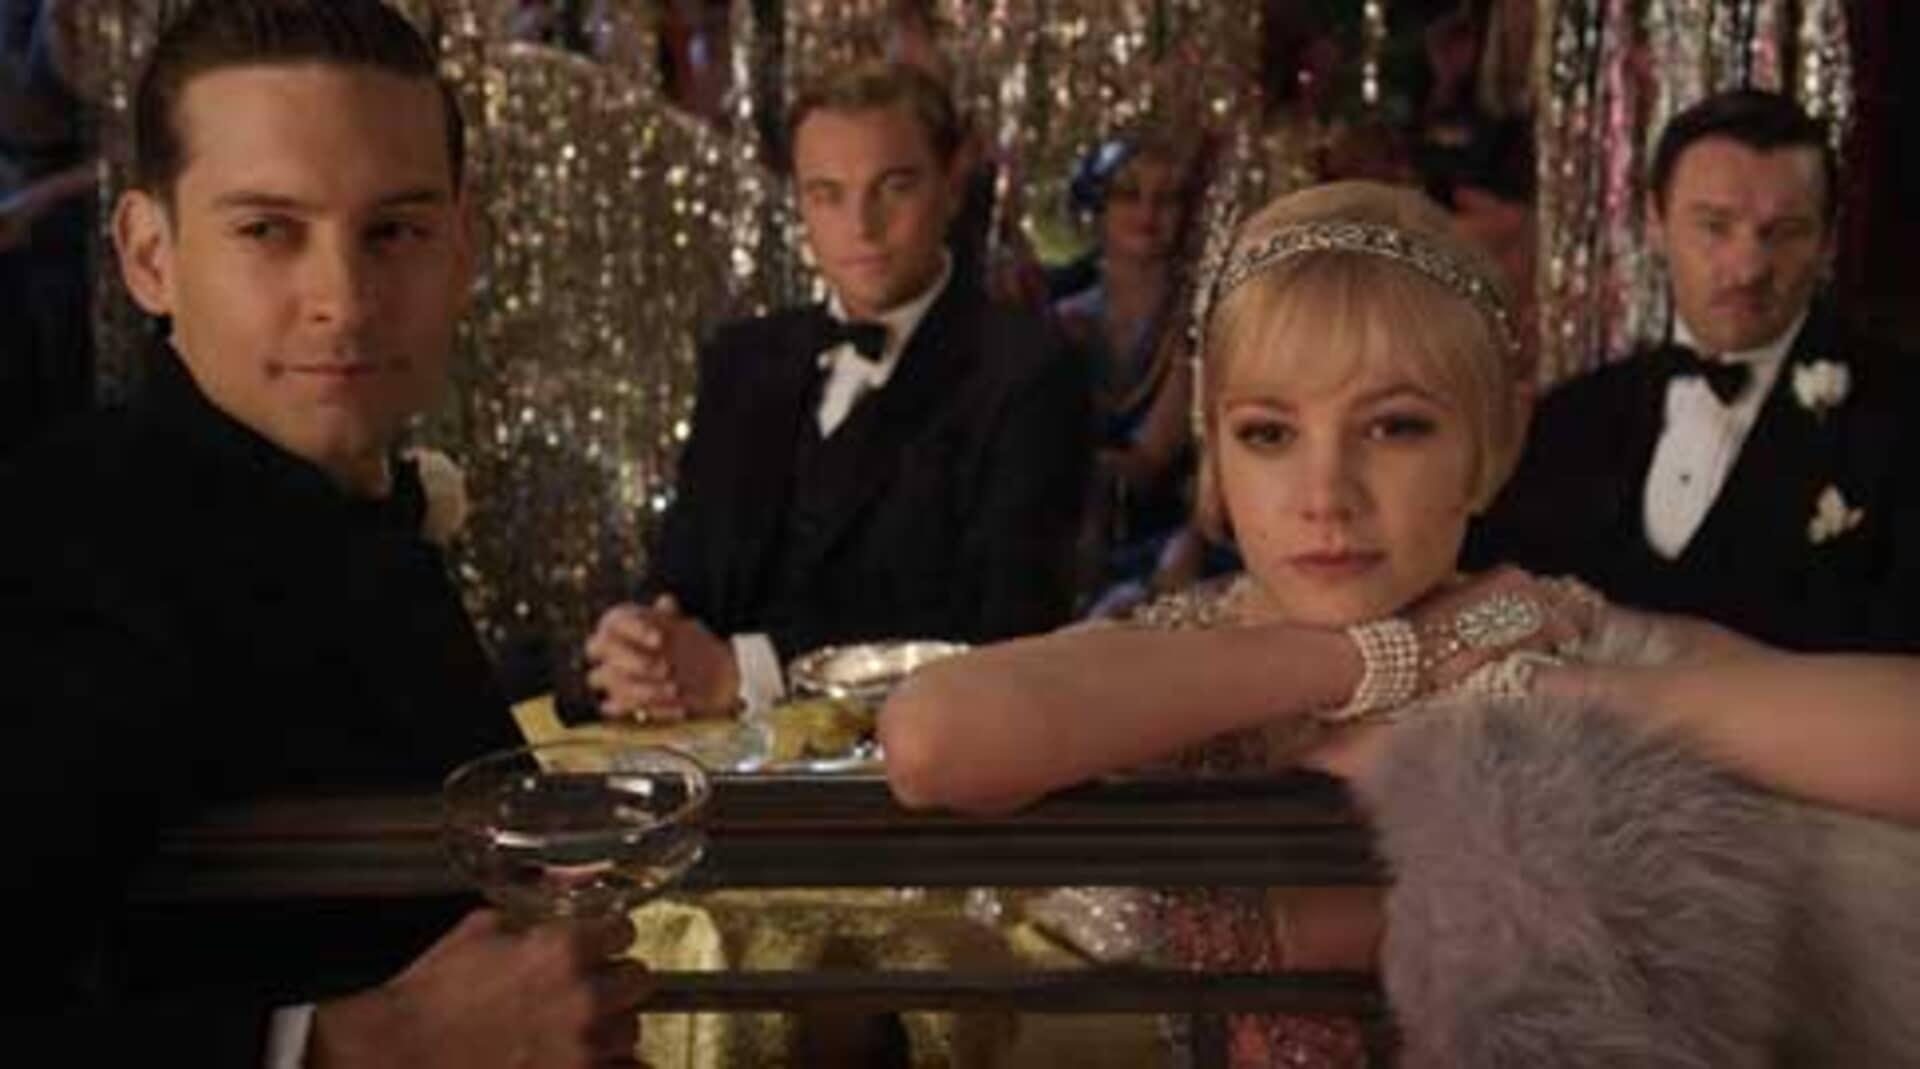 The Great Gatsby - Image 2